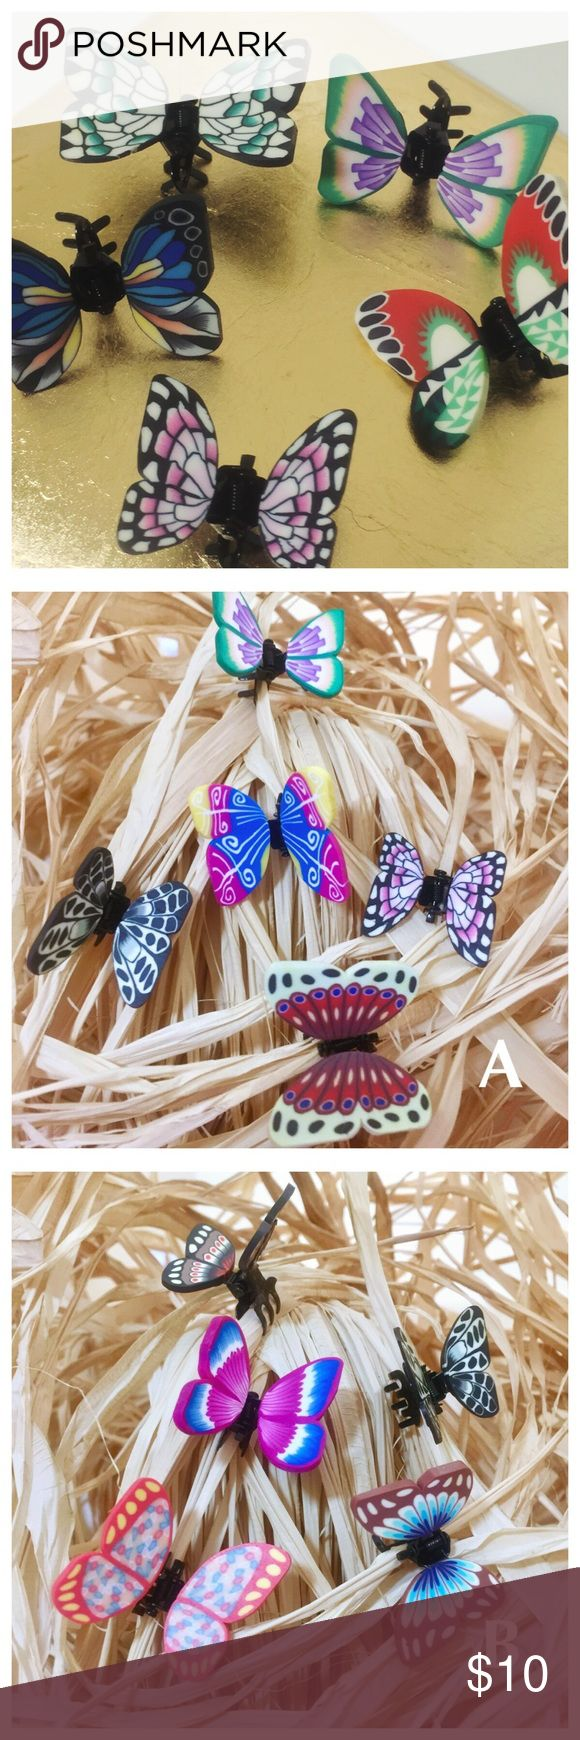 Butterfly Claw Hair Clips - Set of Six Silicone Butterfly Claw Hair Clips --- Set of Six ---- You will receive the five pictured (that you select) and one clip of my choice (for a total of 6) --- Please select set A, B, C, E, F, or G colorway Accessories Hair Accessories